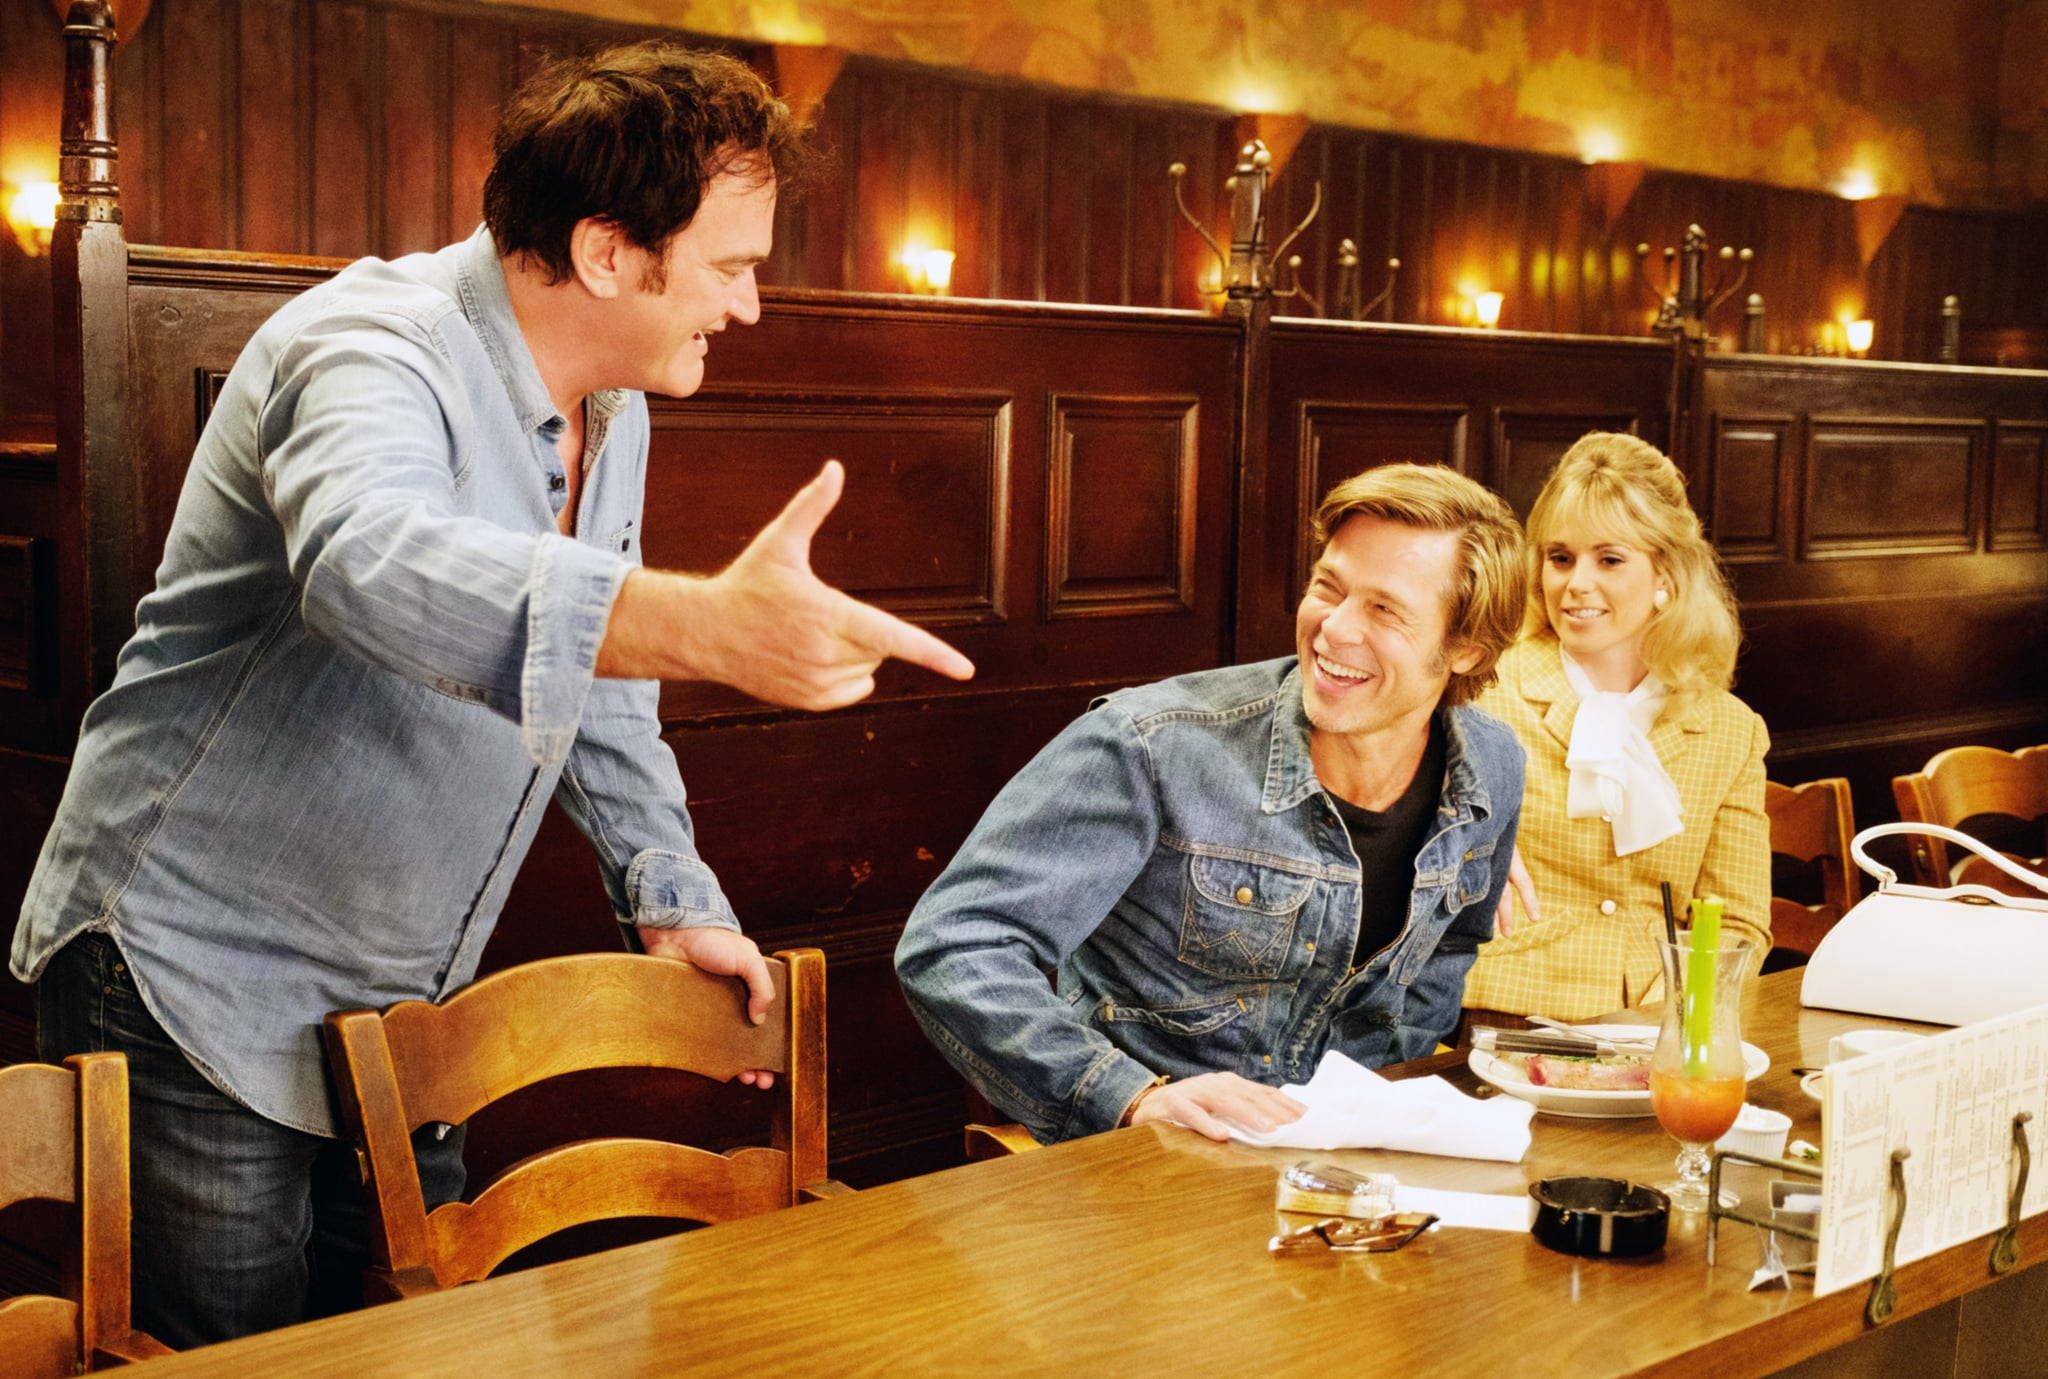 ONCE UPON A TIME IN HOLLYWOOD, from left: director Quentin Tarantino, Brad Pitt, Elise Nygaard Olson, on-set, 2019. ph: Andrew Cooper / Columbia Pictures / courtesy Everett Collection